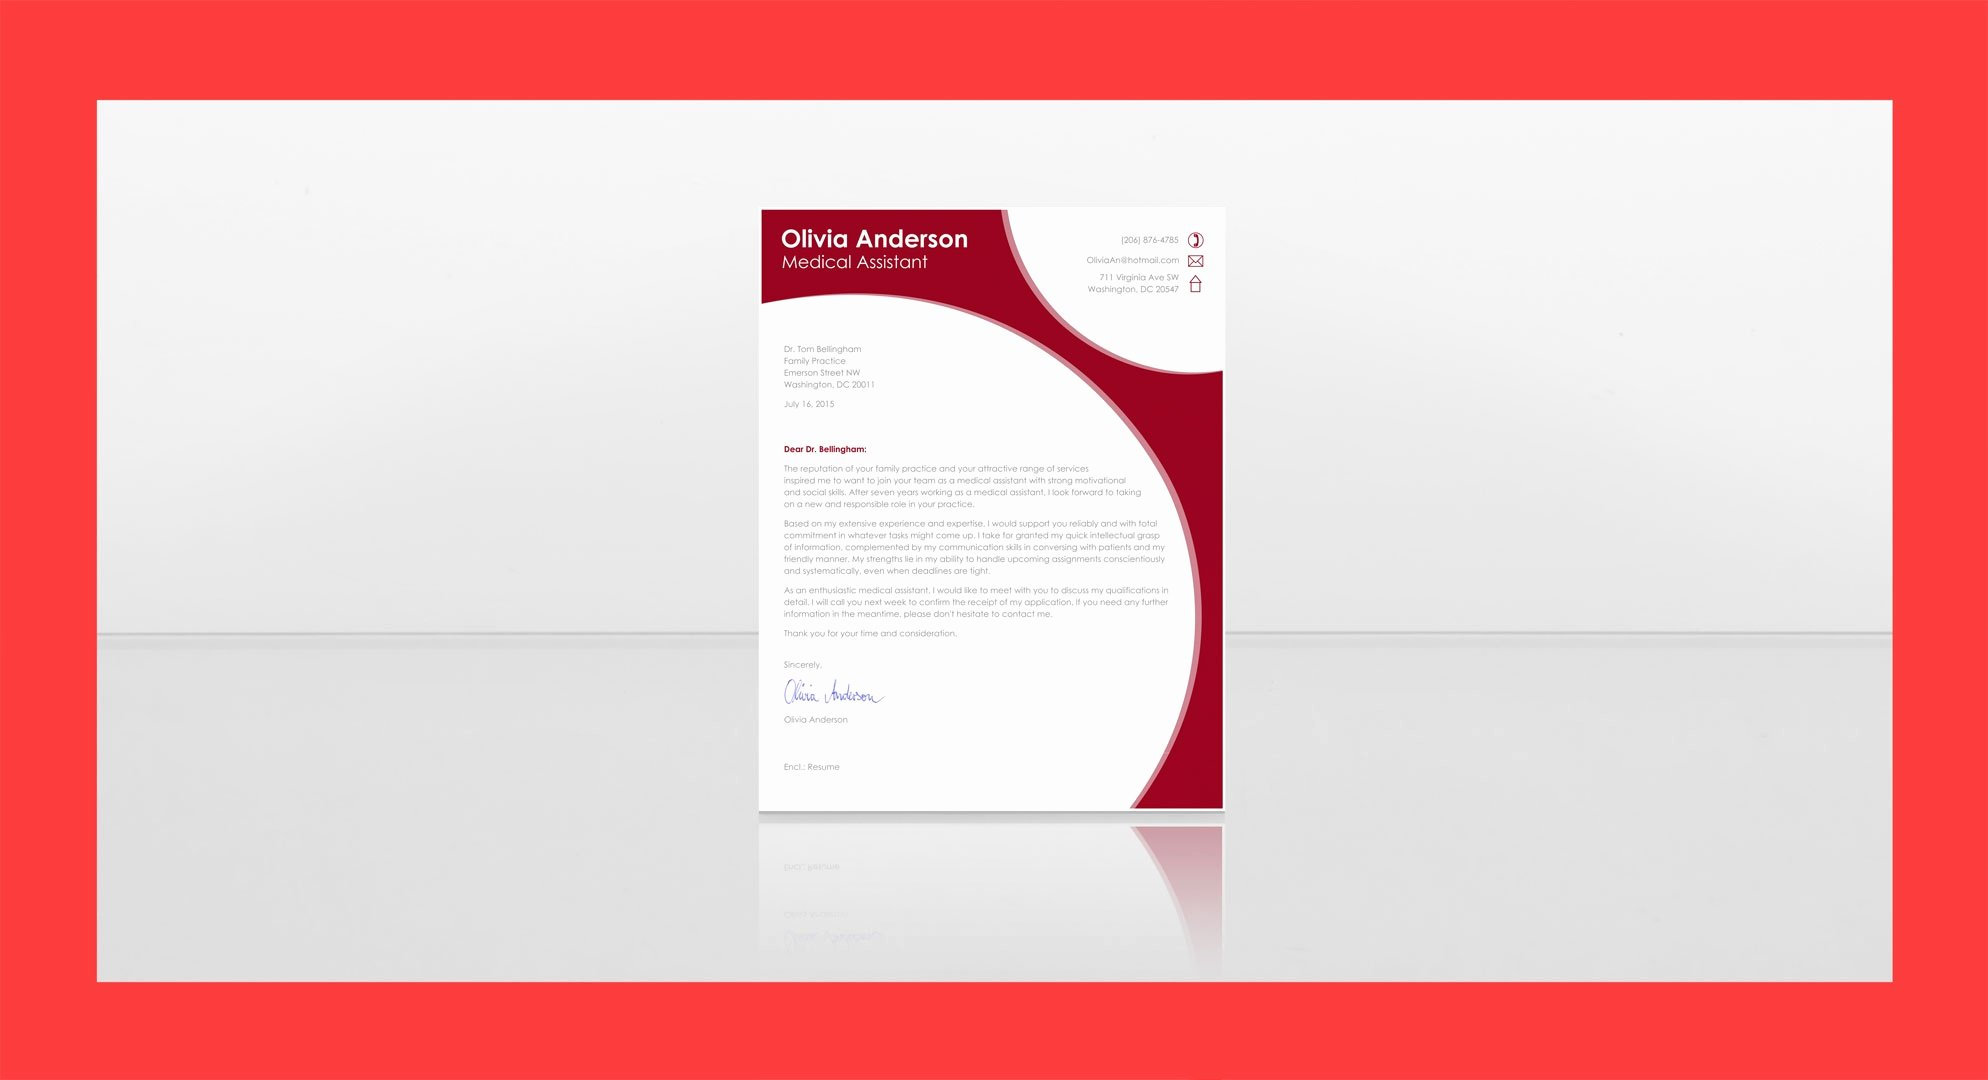 Training Manual Template Word Awesome Training Manual Template Word 2010 Portablegasgrillweber